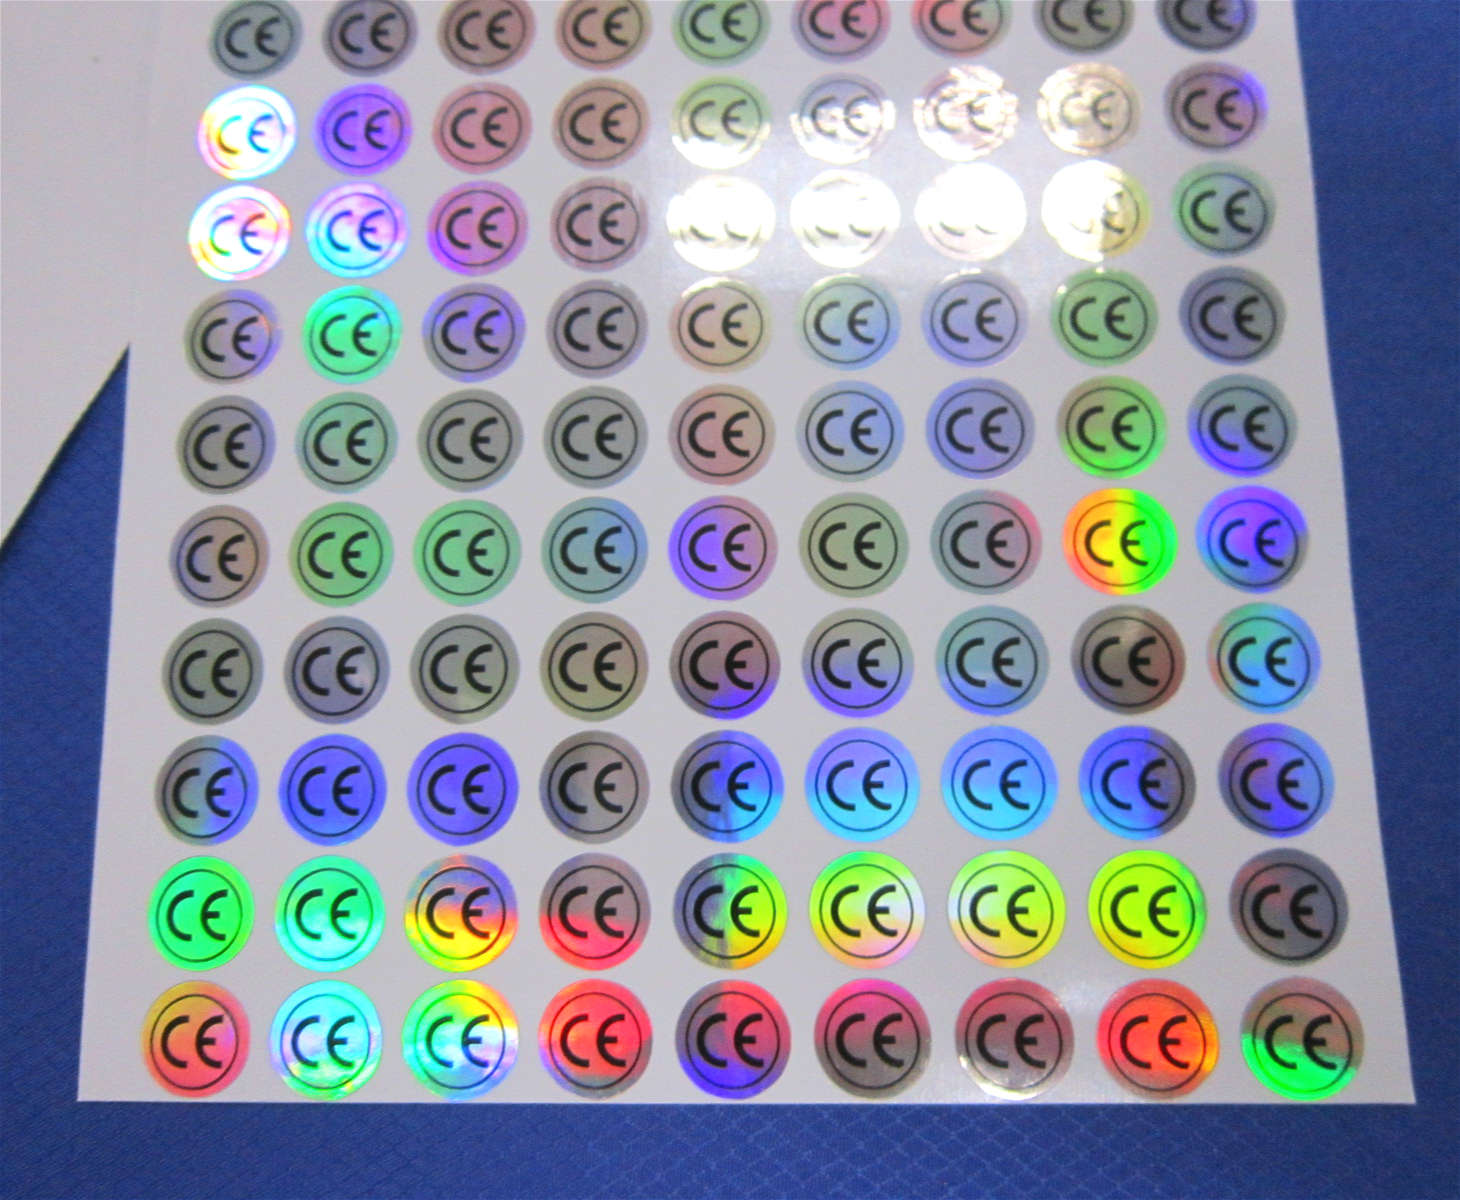 Ce ce safety certification by laser marking laser sticker stickers round stickers color laser 10mm